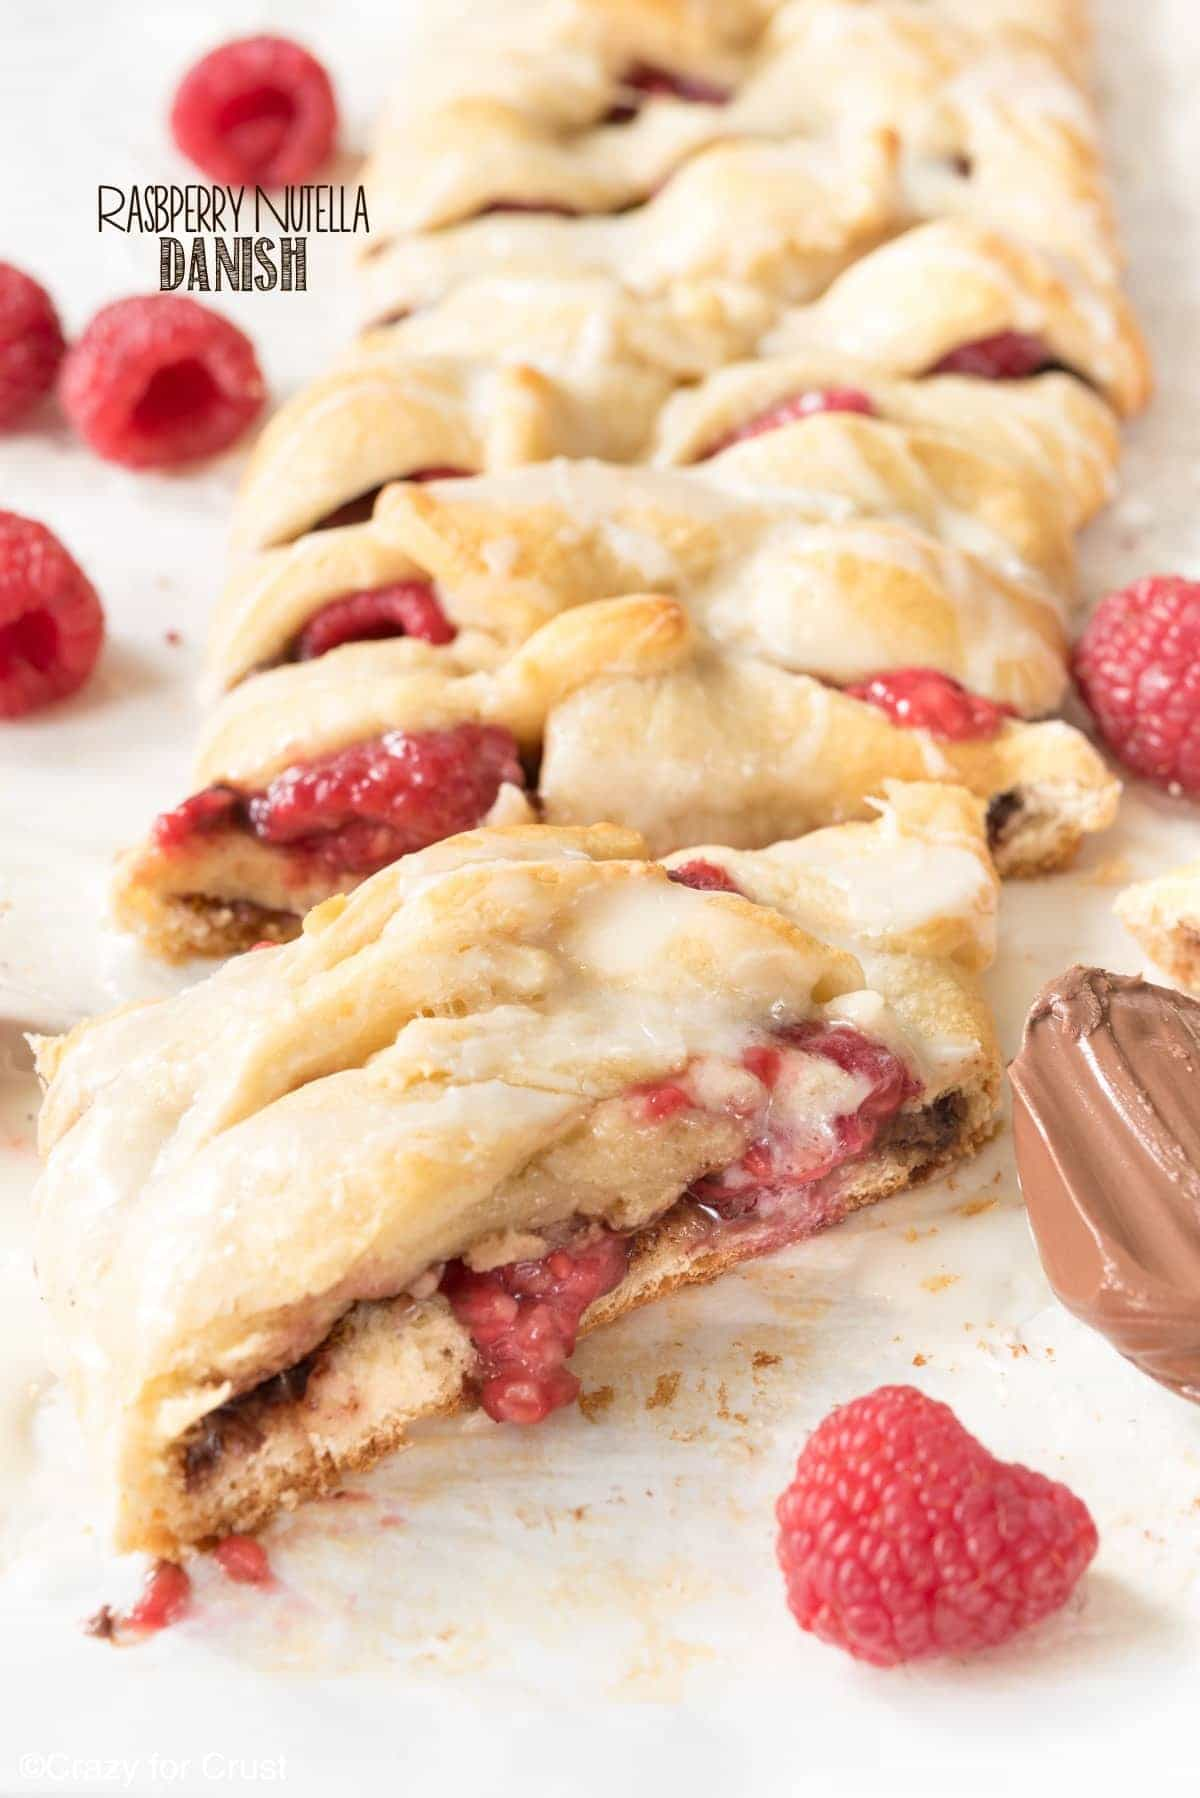 Easy Raspberry Nutella Danish Recipe - this breakfast pastry is so easy to make and is full of Nutella and raspberries!! Only 3 main ingredients and it's on the table in under 30 minutes!